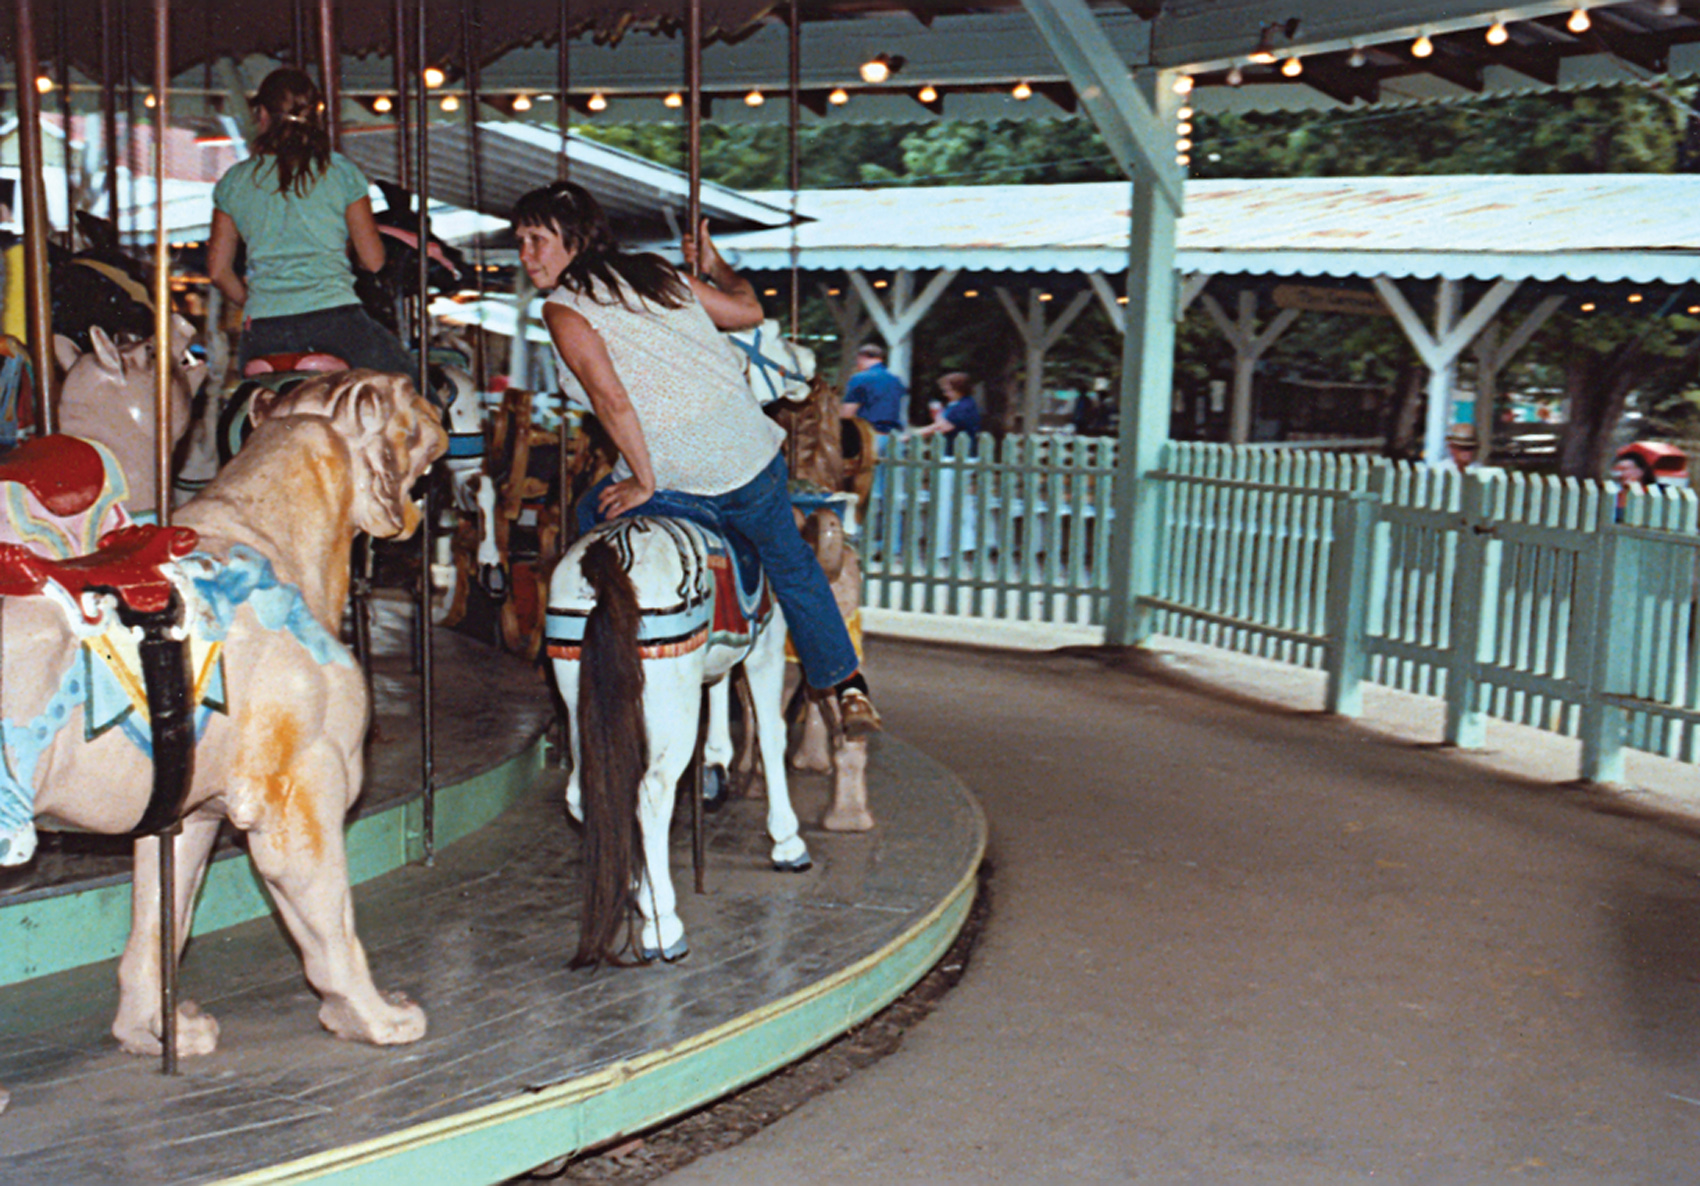 Beech-Bend-park-Dentzel-carousel-Farnsworth-photo